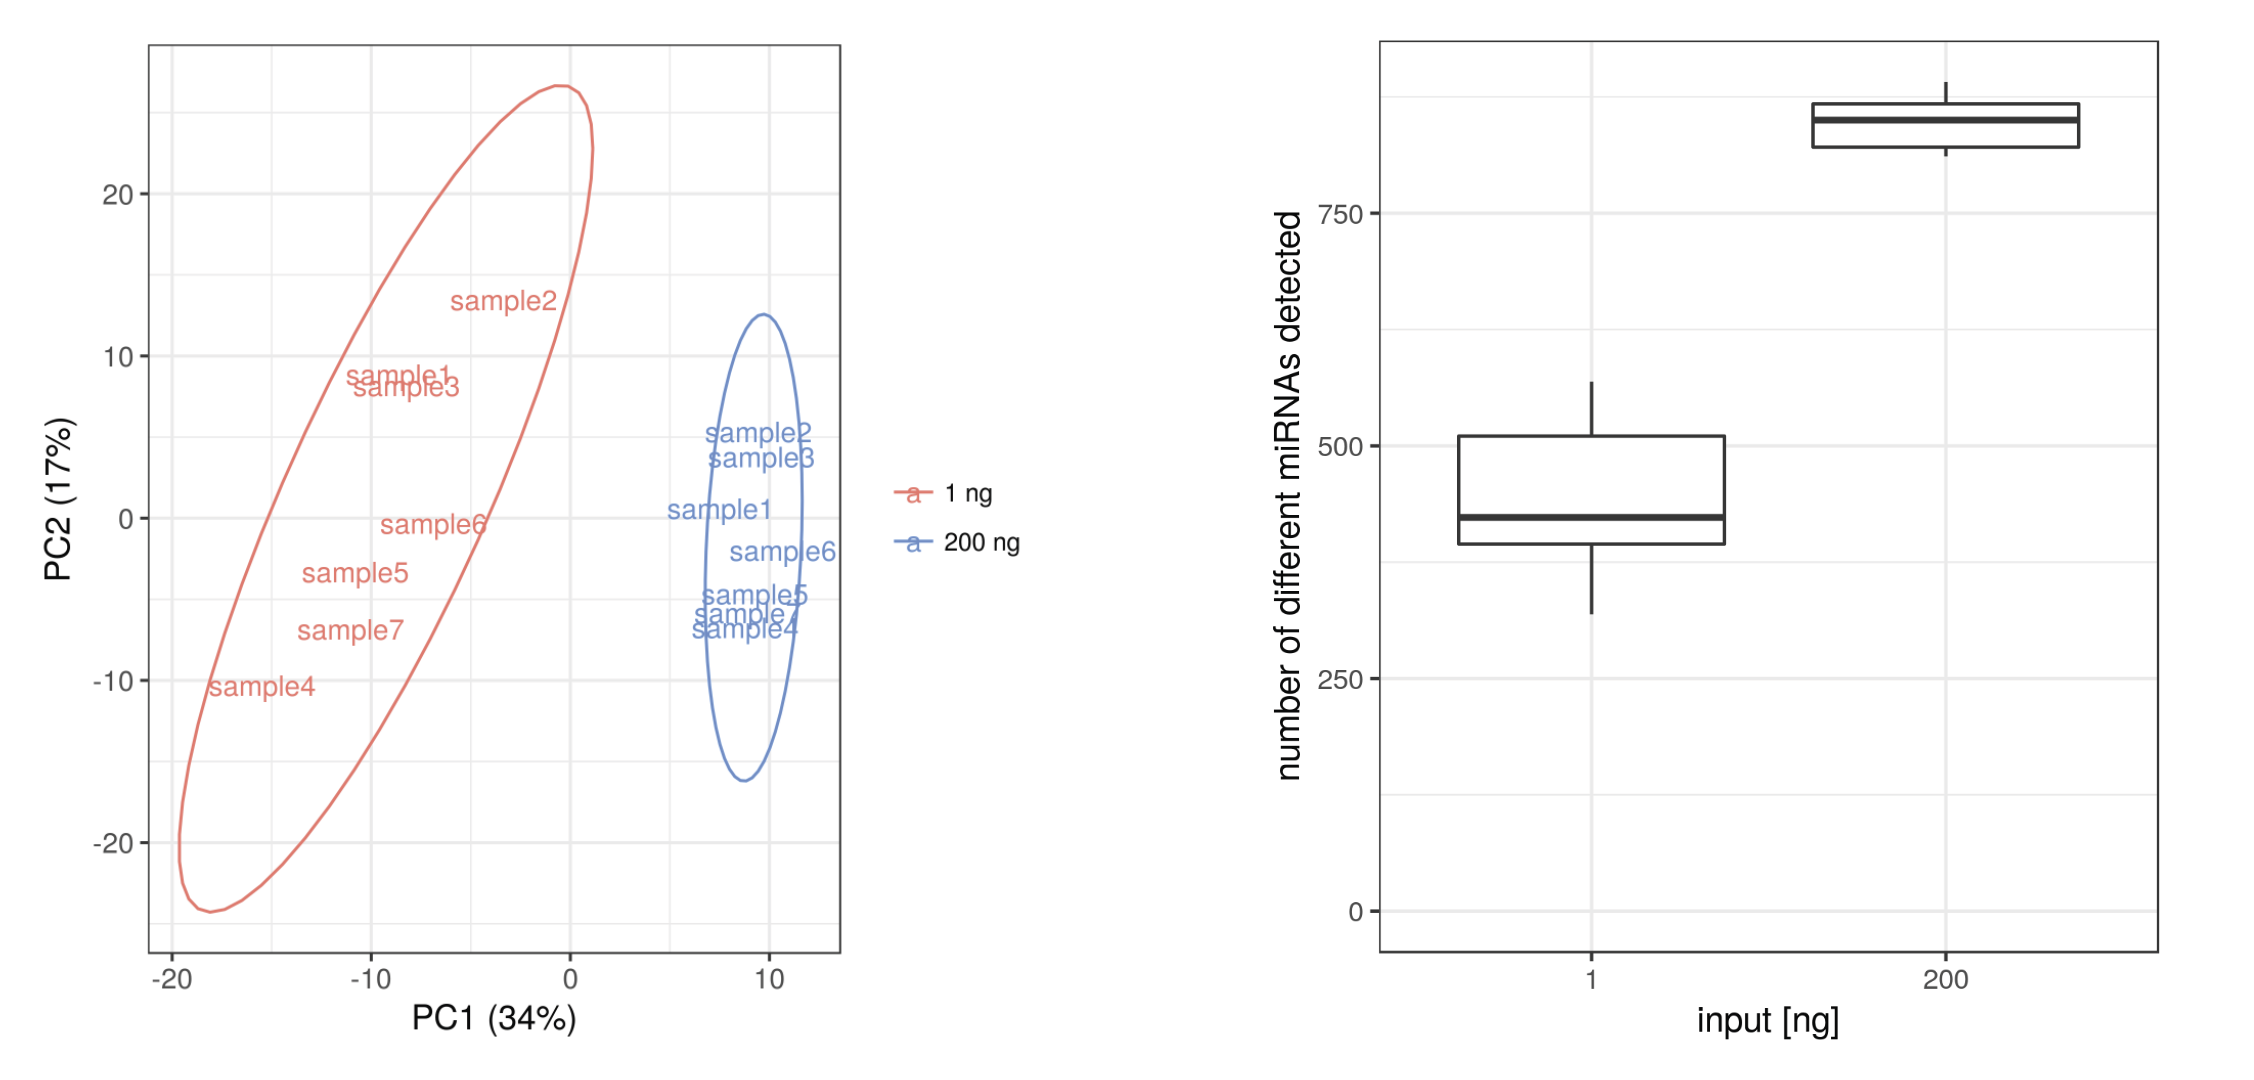 Figure 2: PCA plot of sequenced libraries prepared with 200 ng (blue) and 1 ng (red) RNA (left): reproducible results can be generated with as little as 1 ng RNA input. Corresponding boxplot of detected miRNAs with 200 ng and 1 ng RNA input (right).